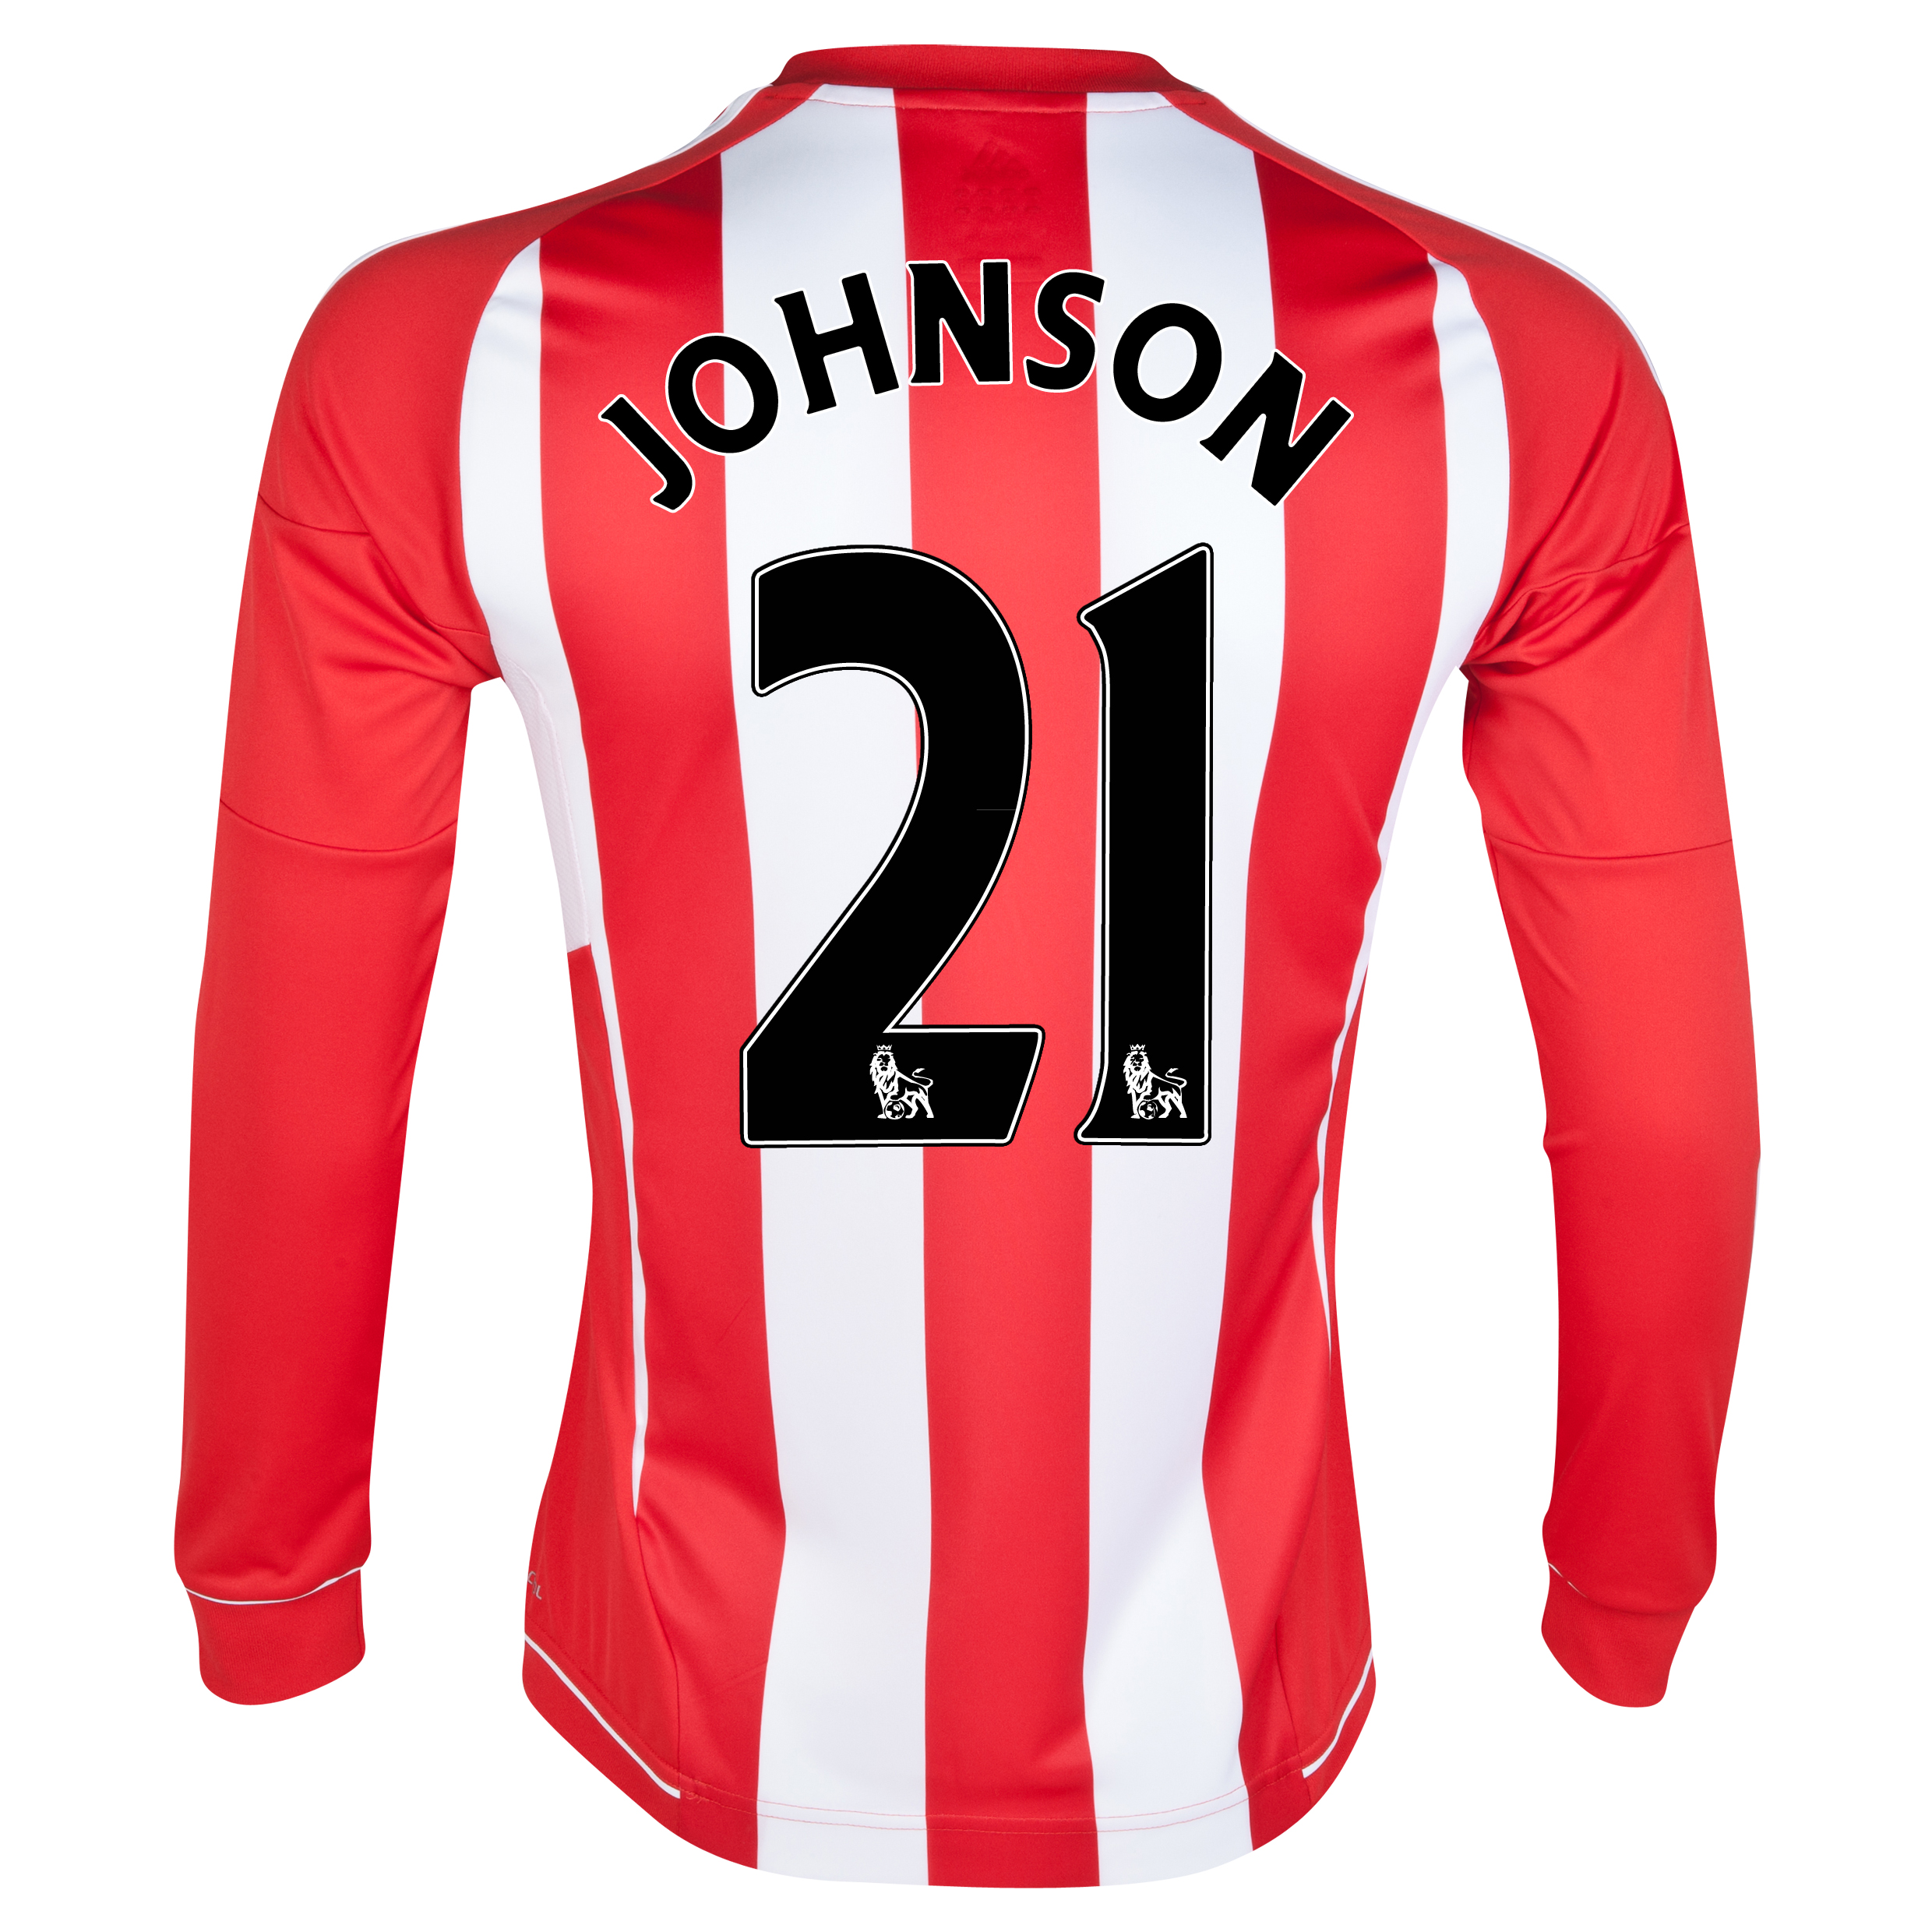 Sunderland Home Shirt 2012/13 - Long Sleeved with Johnson 21 printing